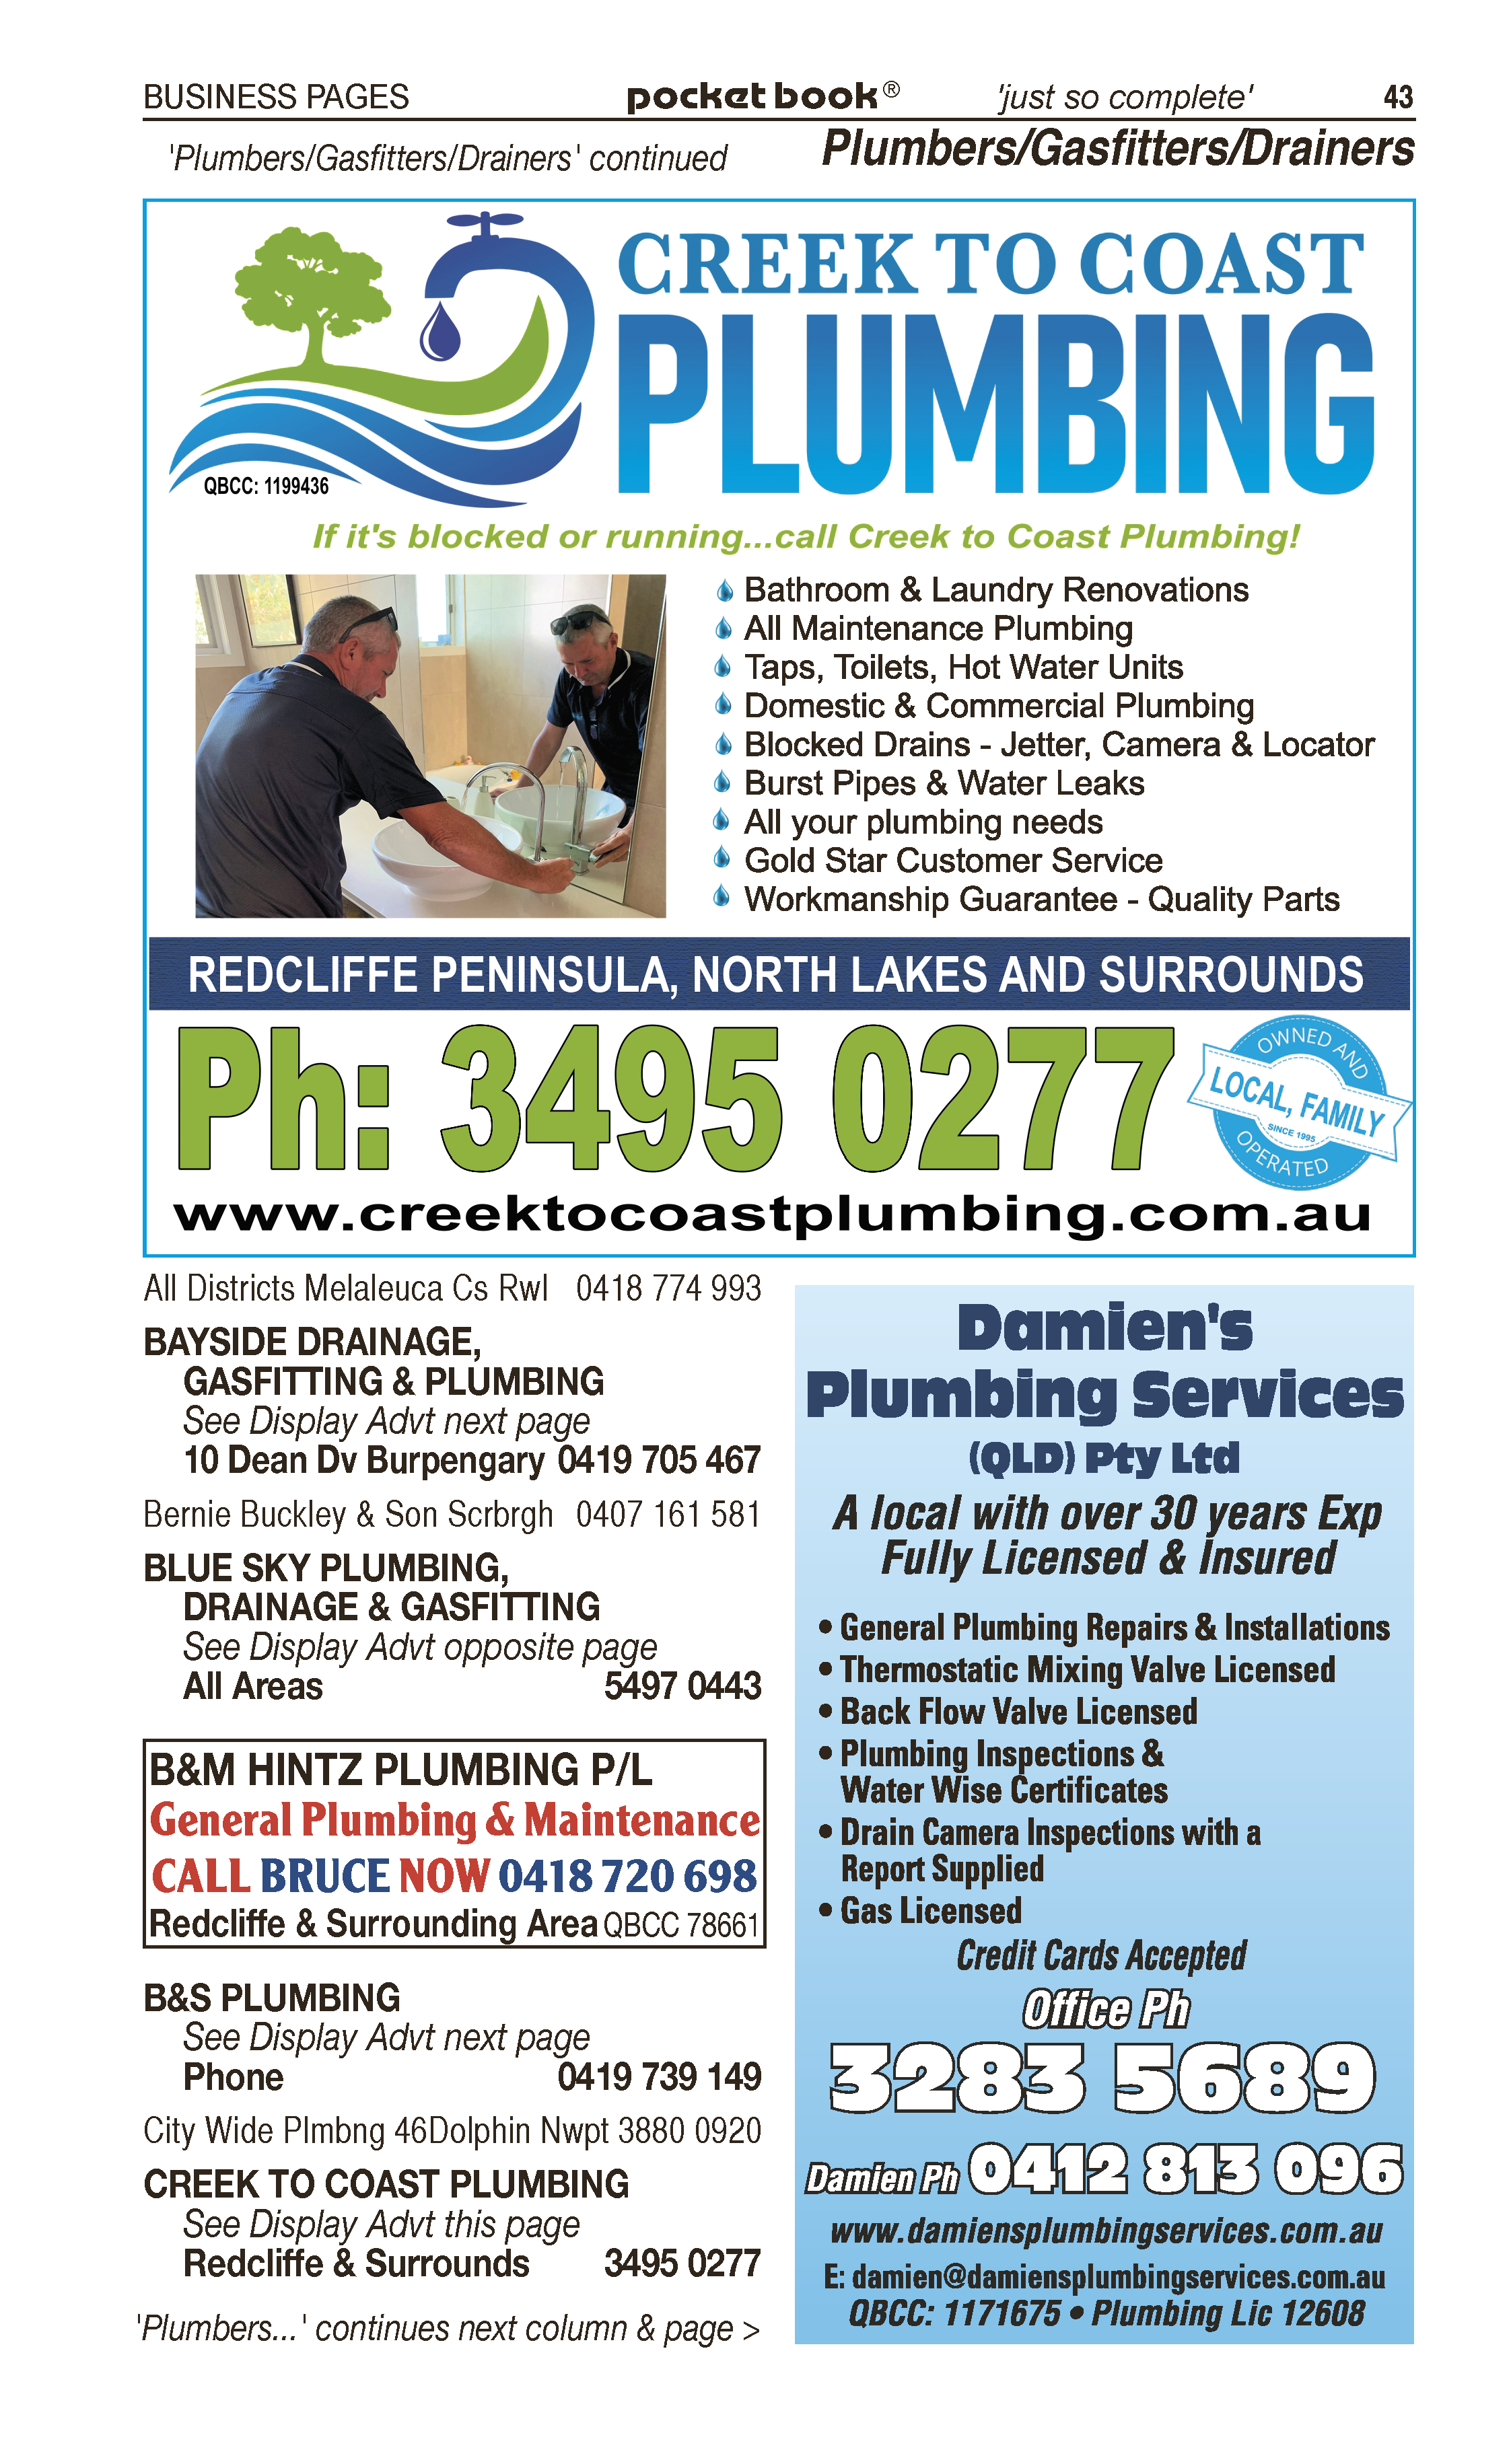 Jono's Plumbing Services Redcliffe | Gasfitters in Scarborough | PBezy Pocket Books local directories - page 43